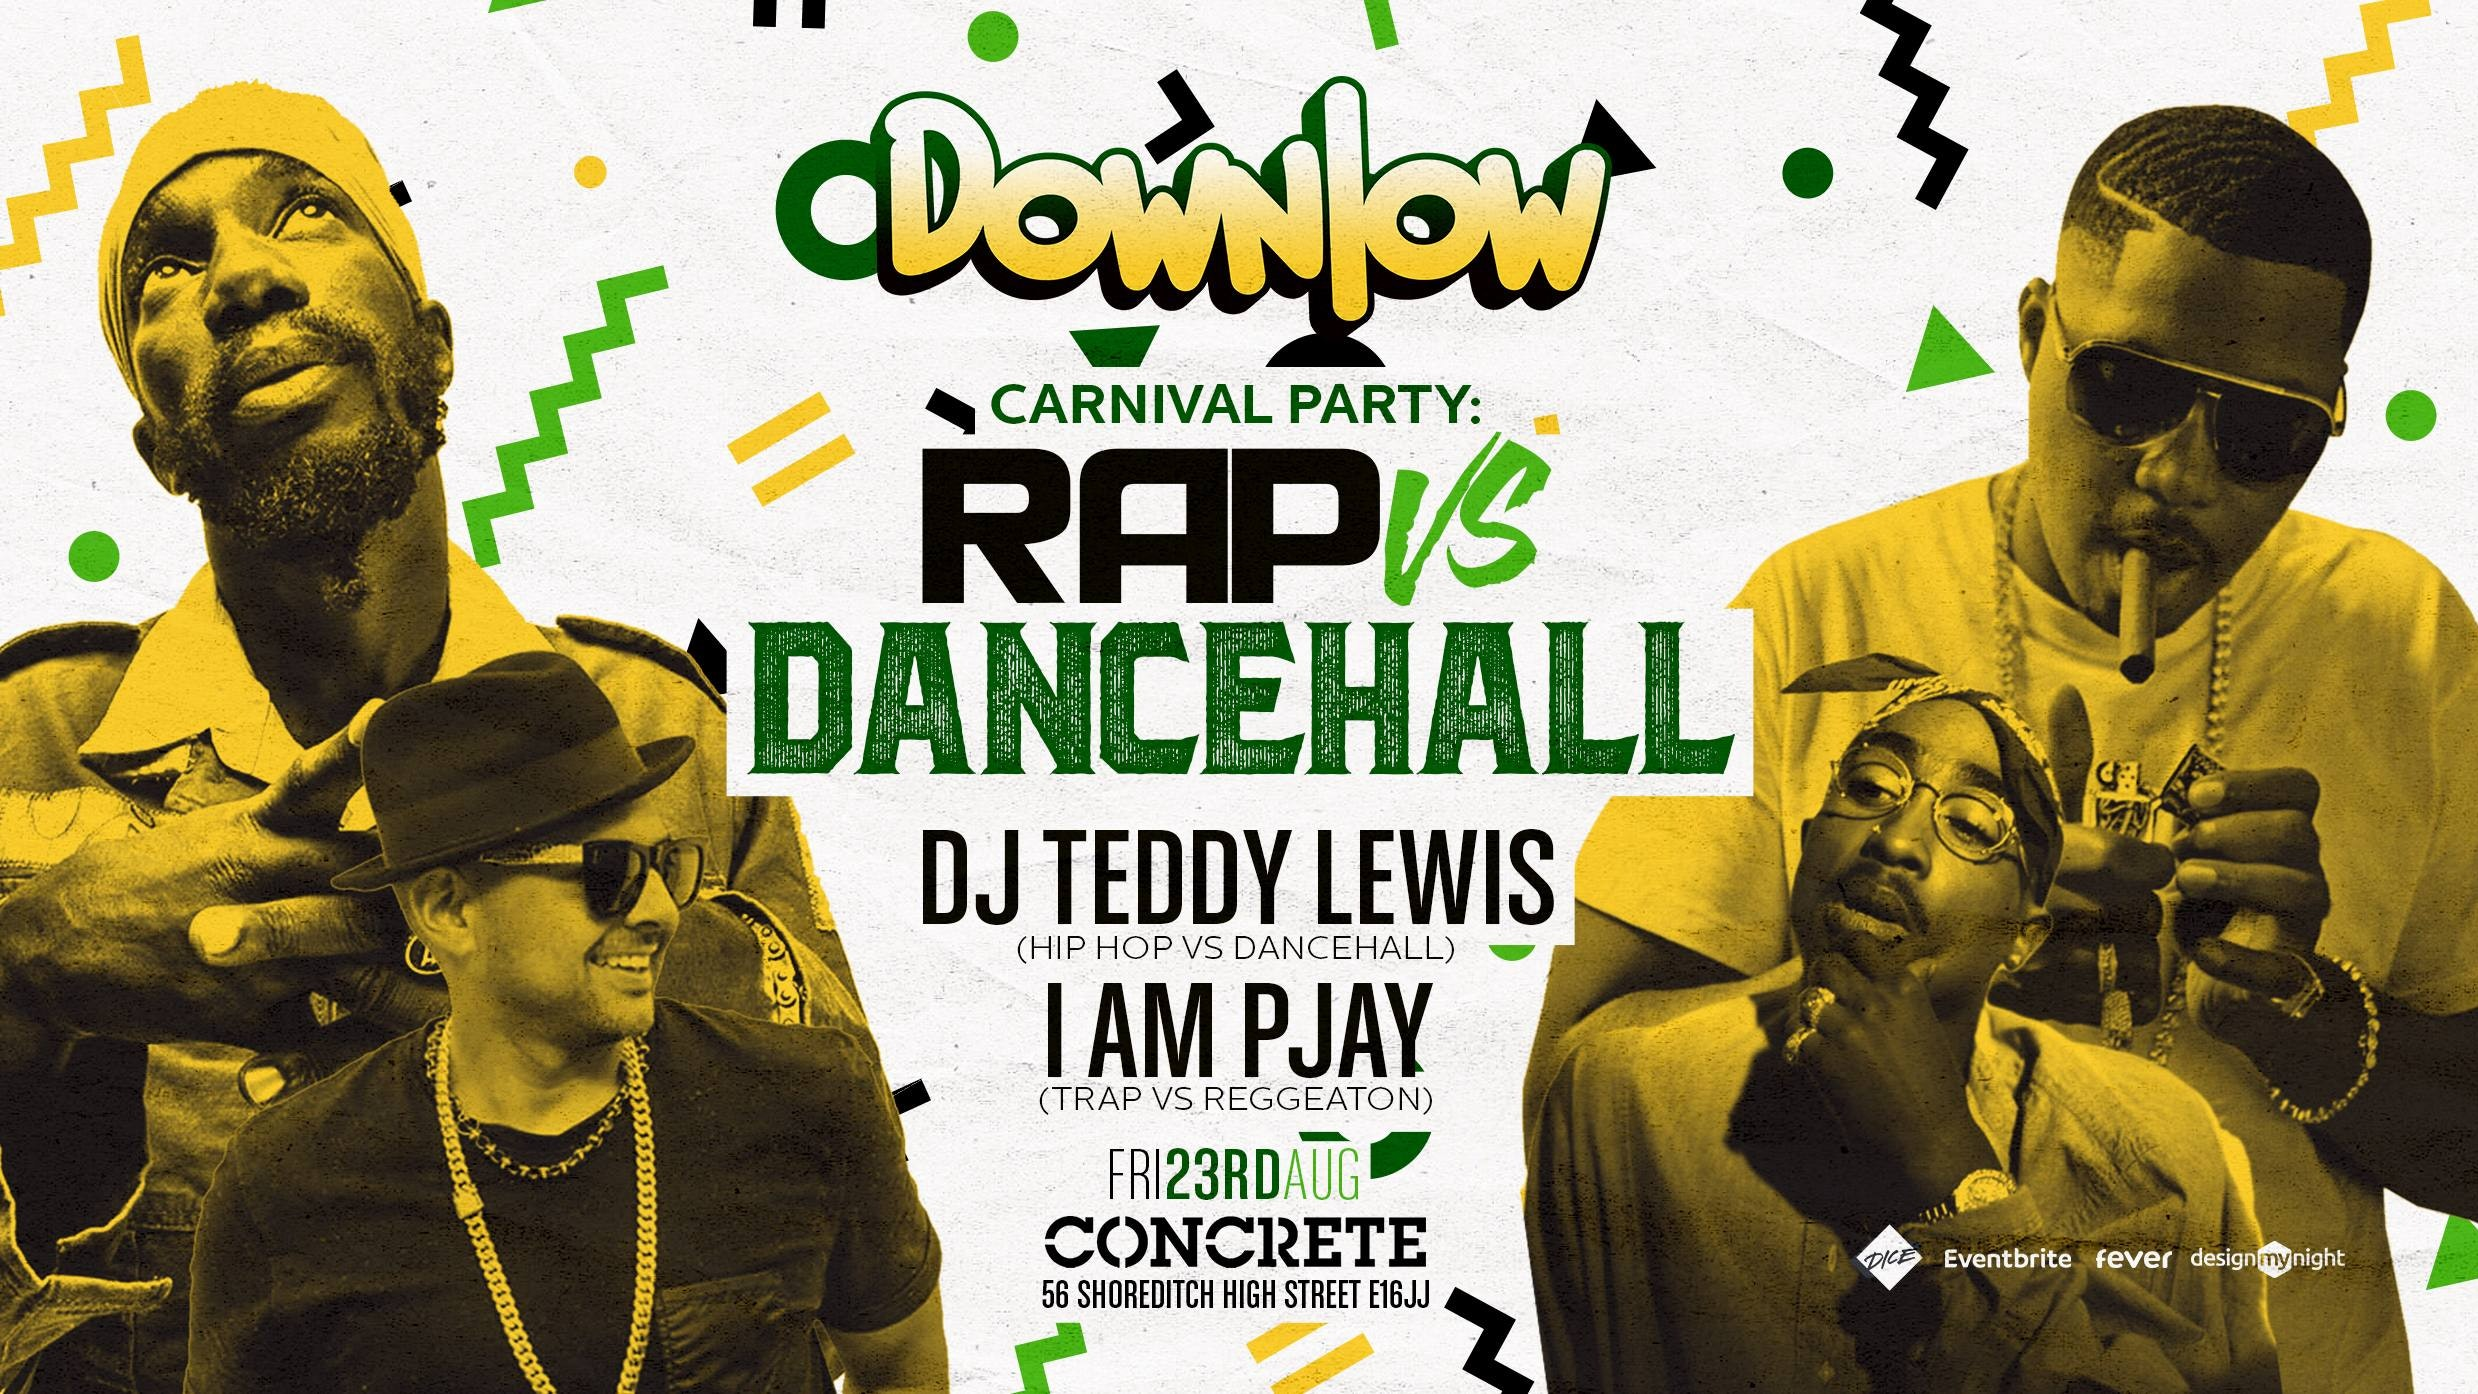 Dancehall vs Rap Carnival party Shoreditch